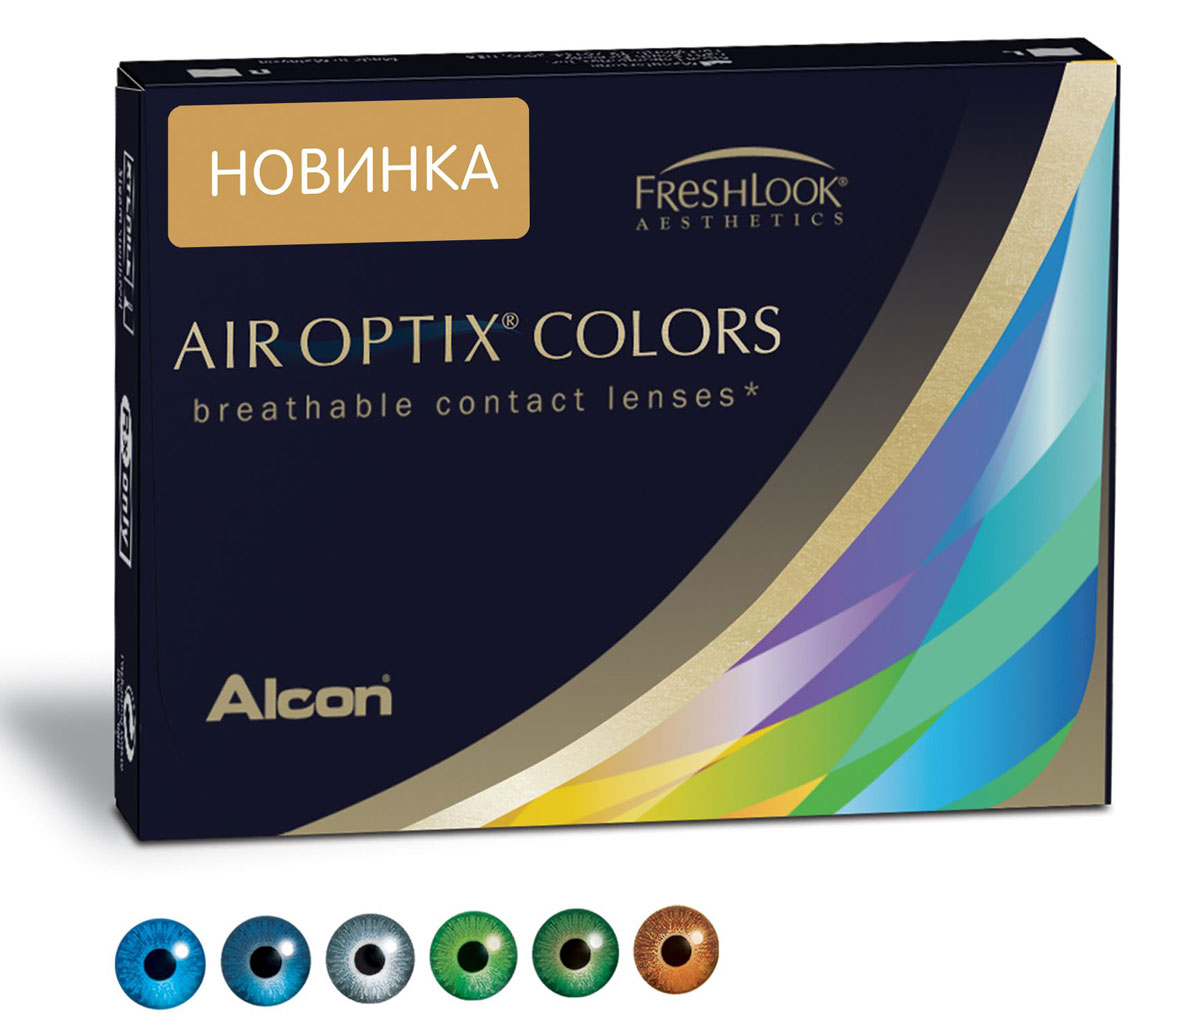 Аlcon контактные линзы Air Optix Colors 2 шт -6.00 Green